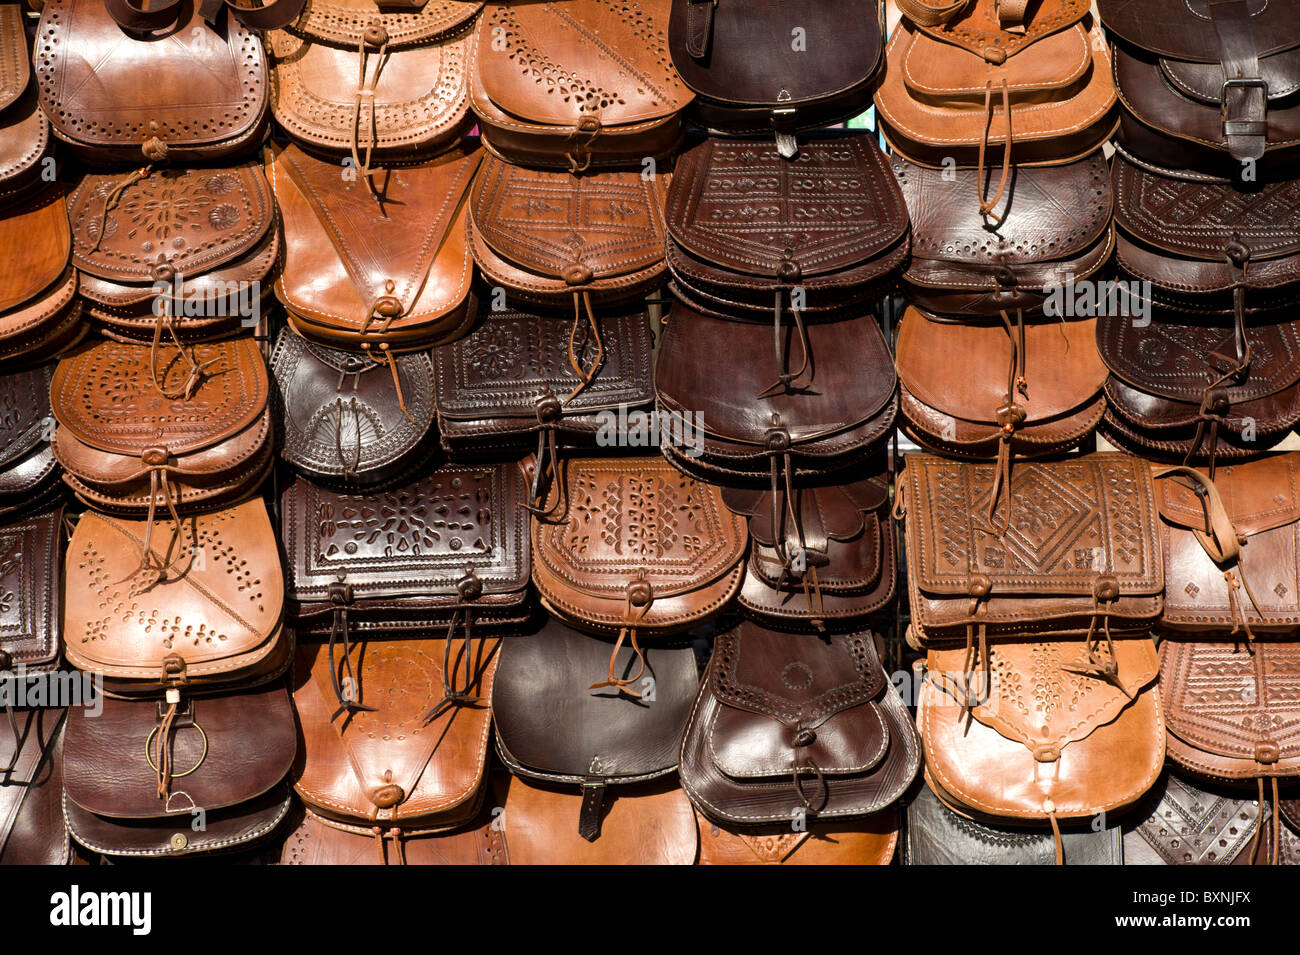 Handmade leather bags on market stall, Spain - Stock Image